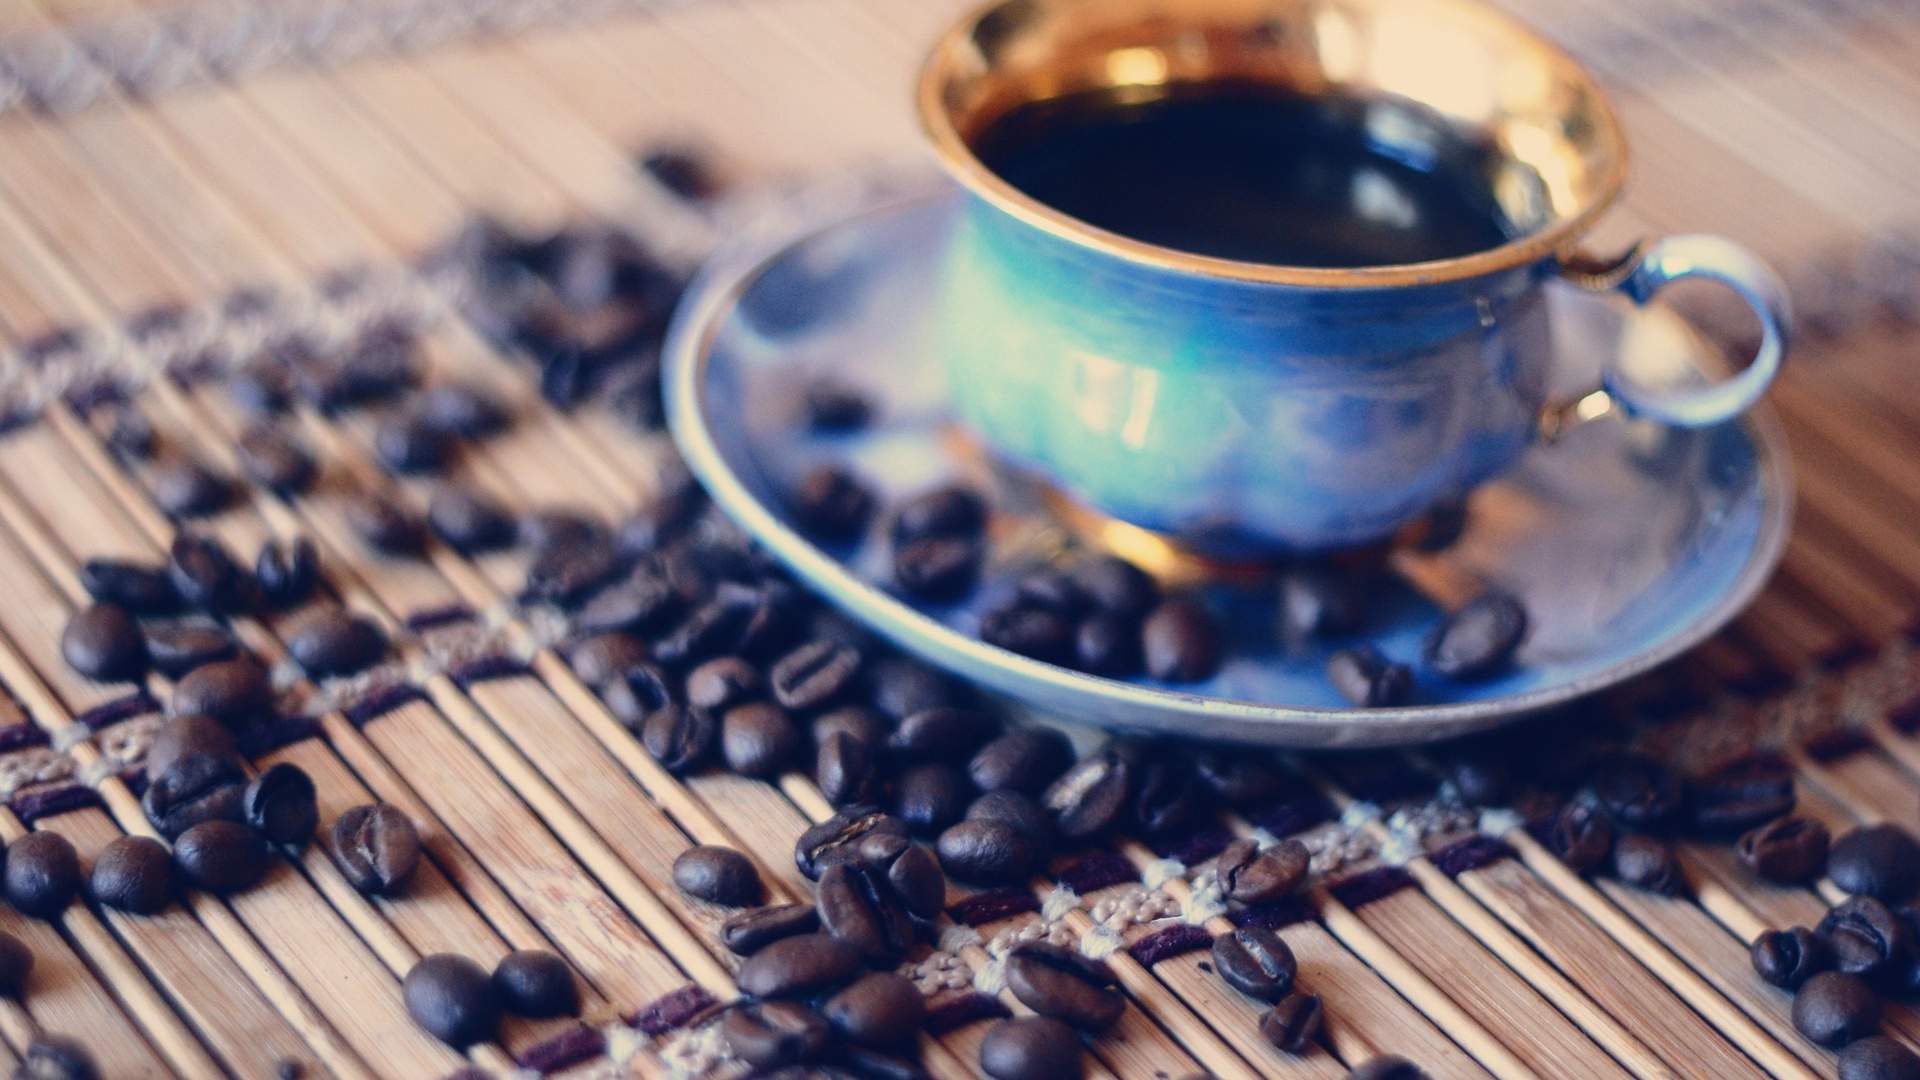 Coffee Beans Cup Wallpapers - 1920x1080 - 609998